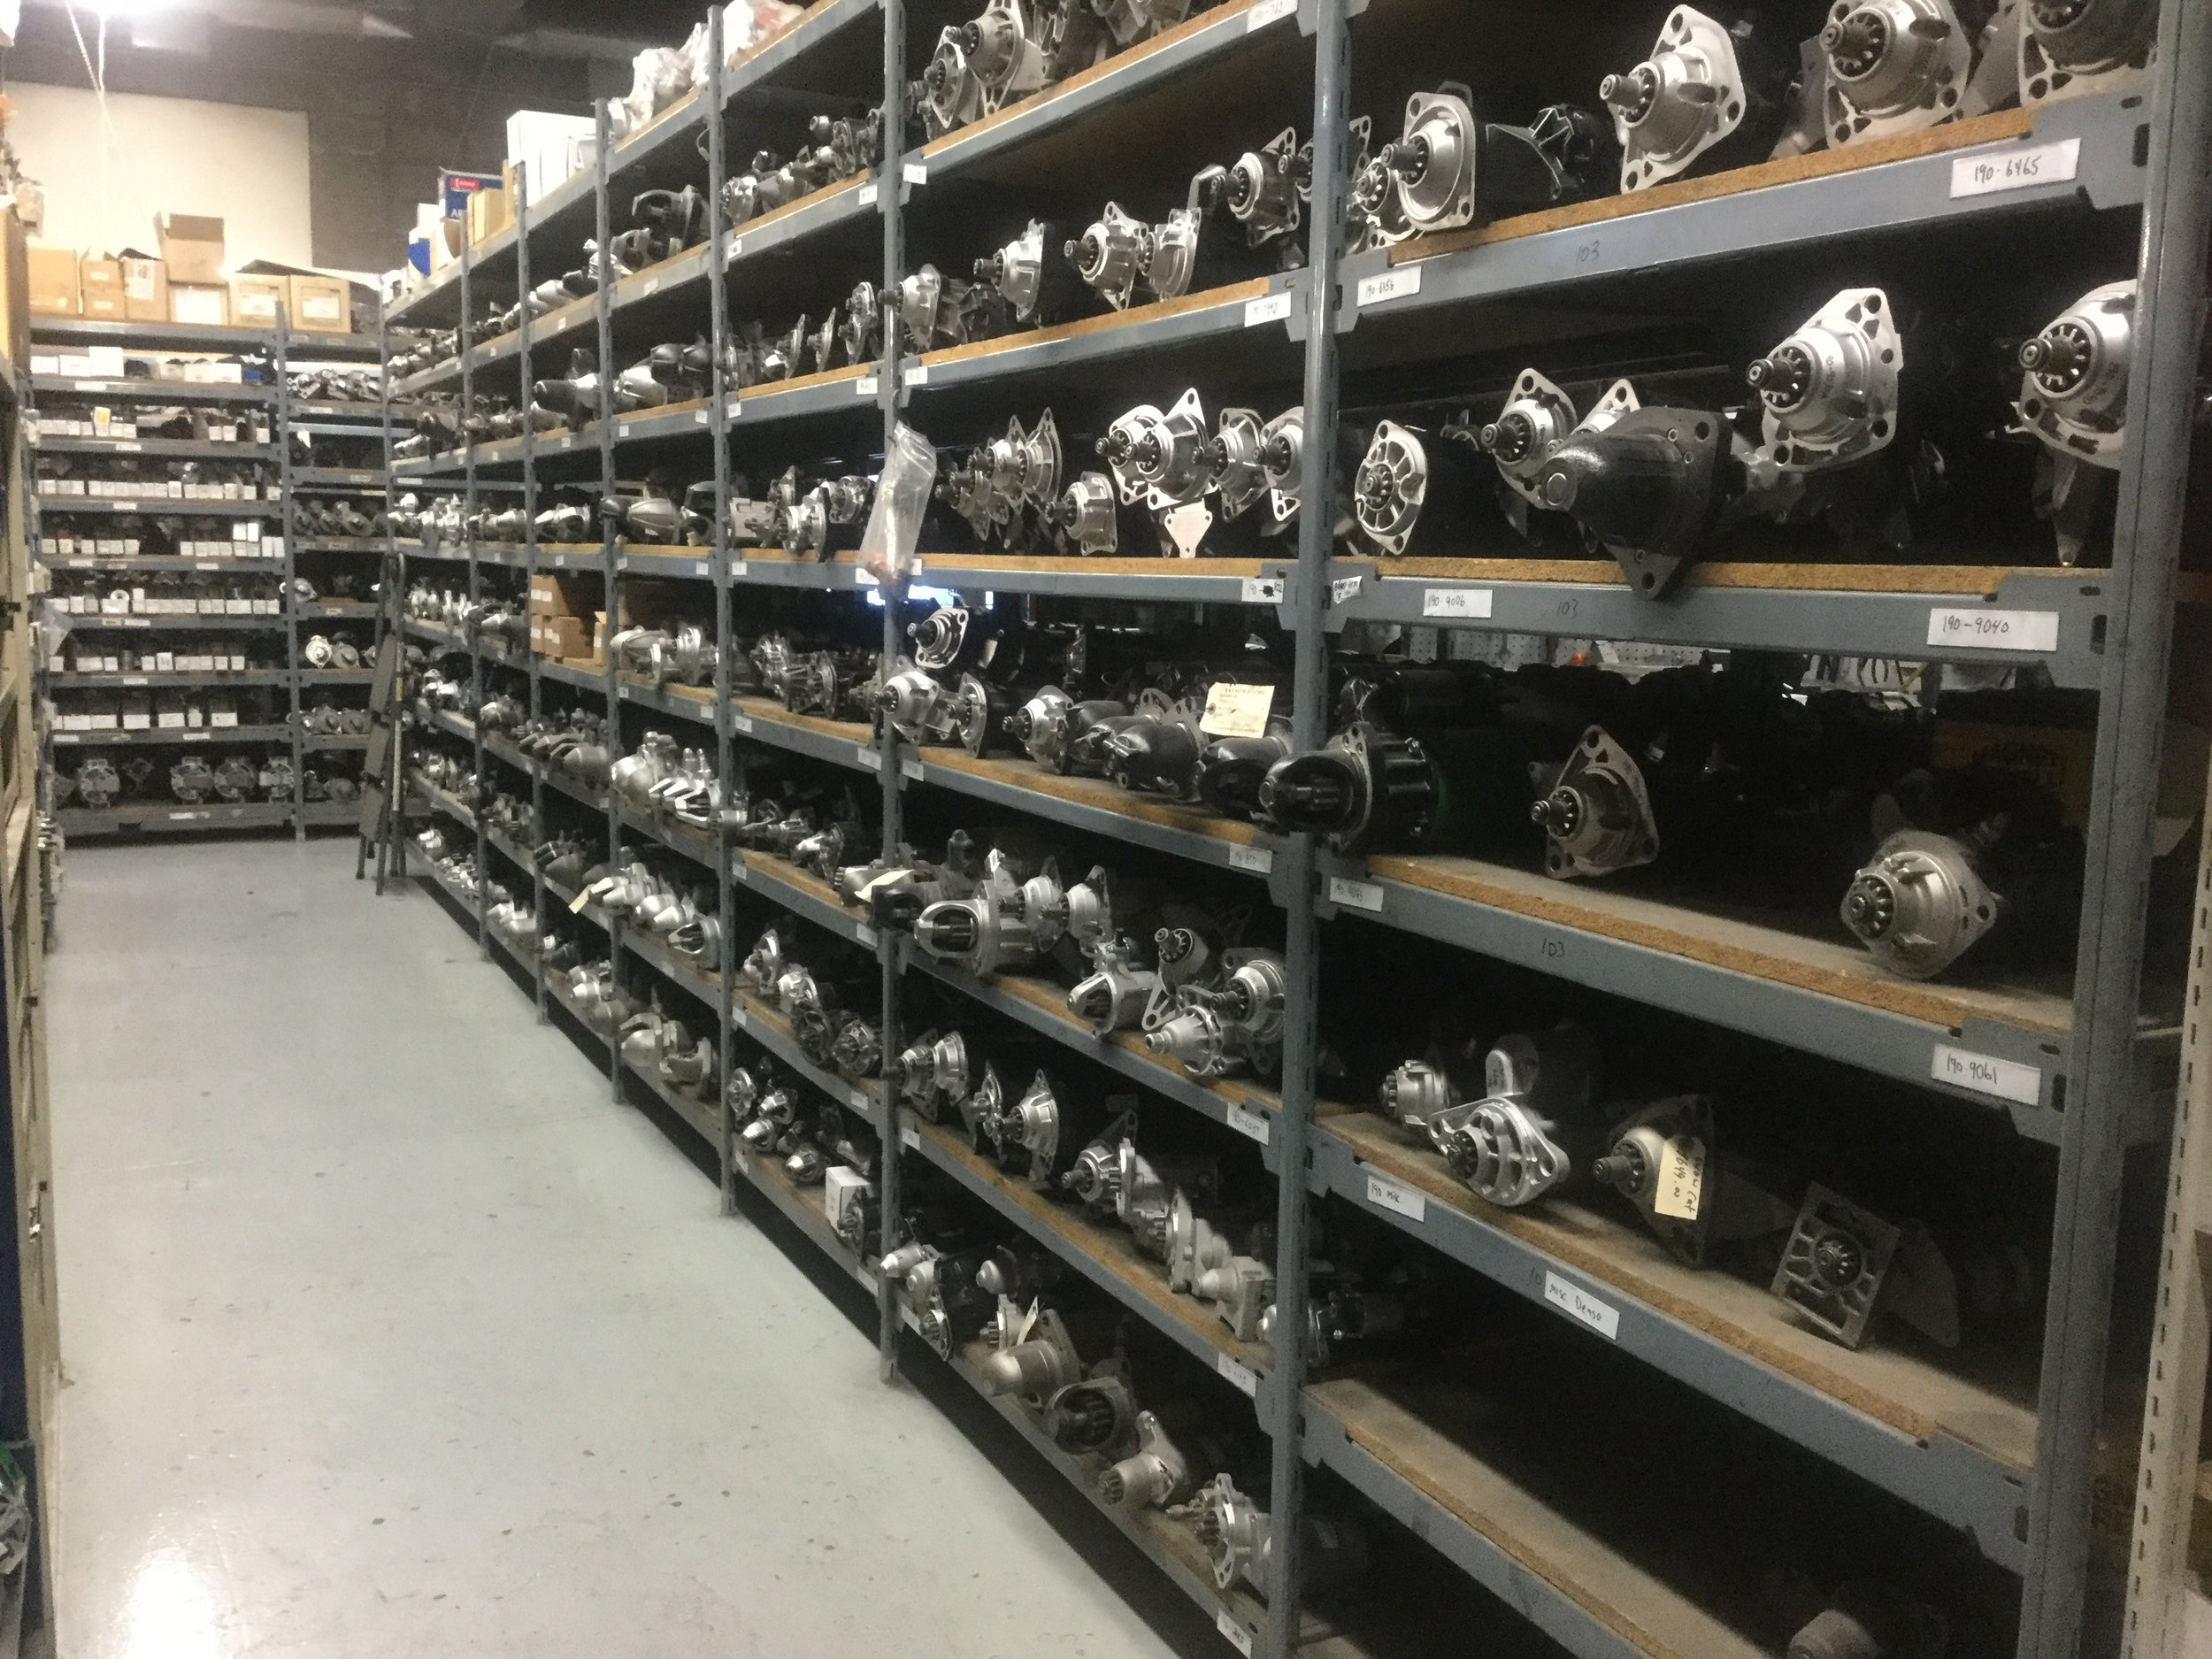 We can repair your starter motor to get you up and running fast, or do a full rebuild that will last.